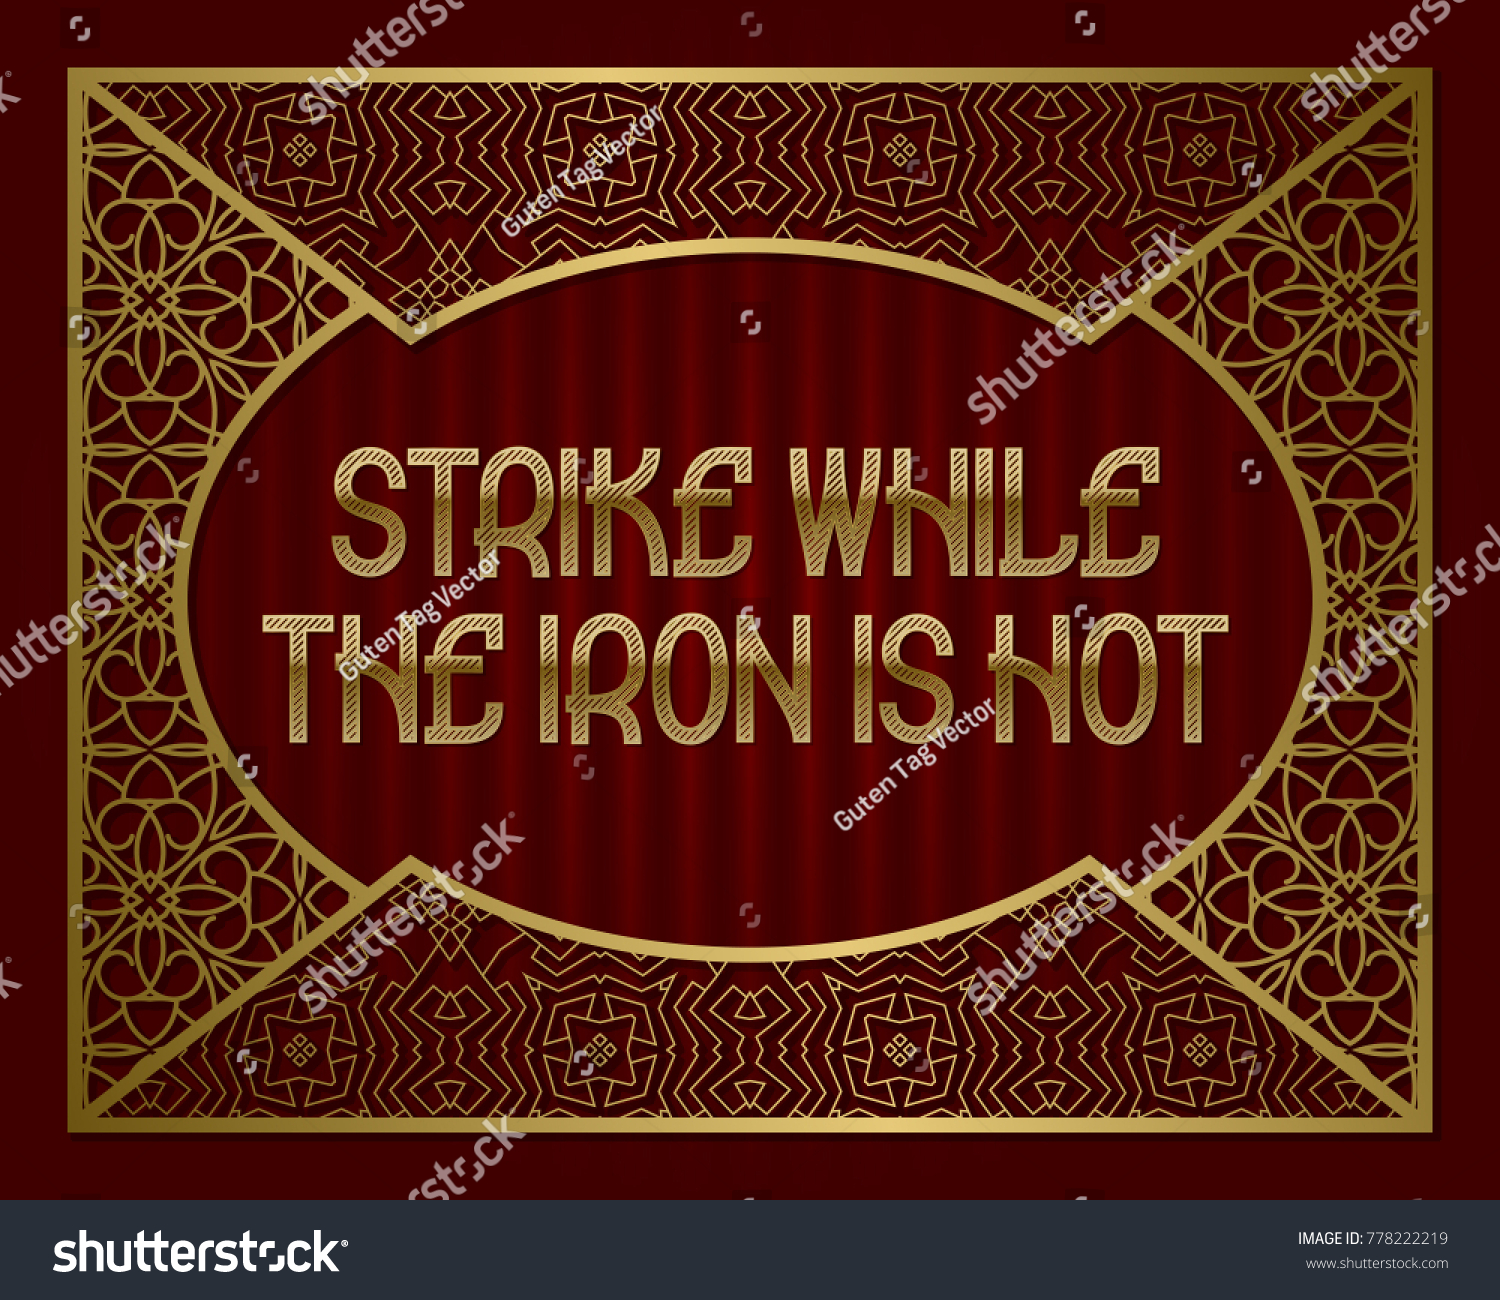 strike while iron is hot